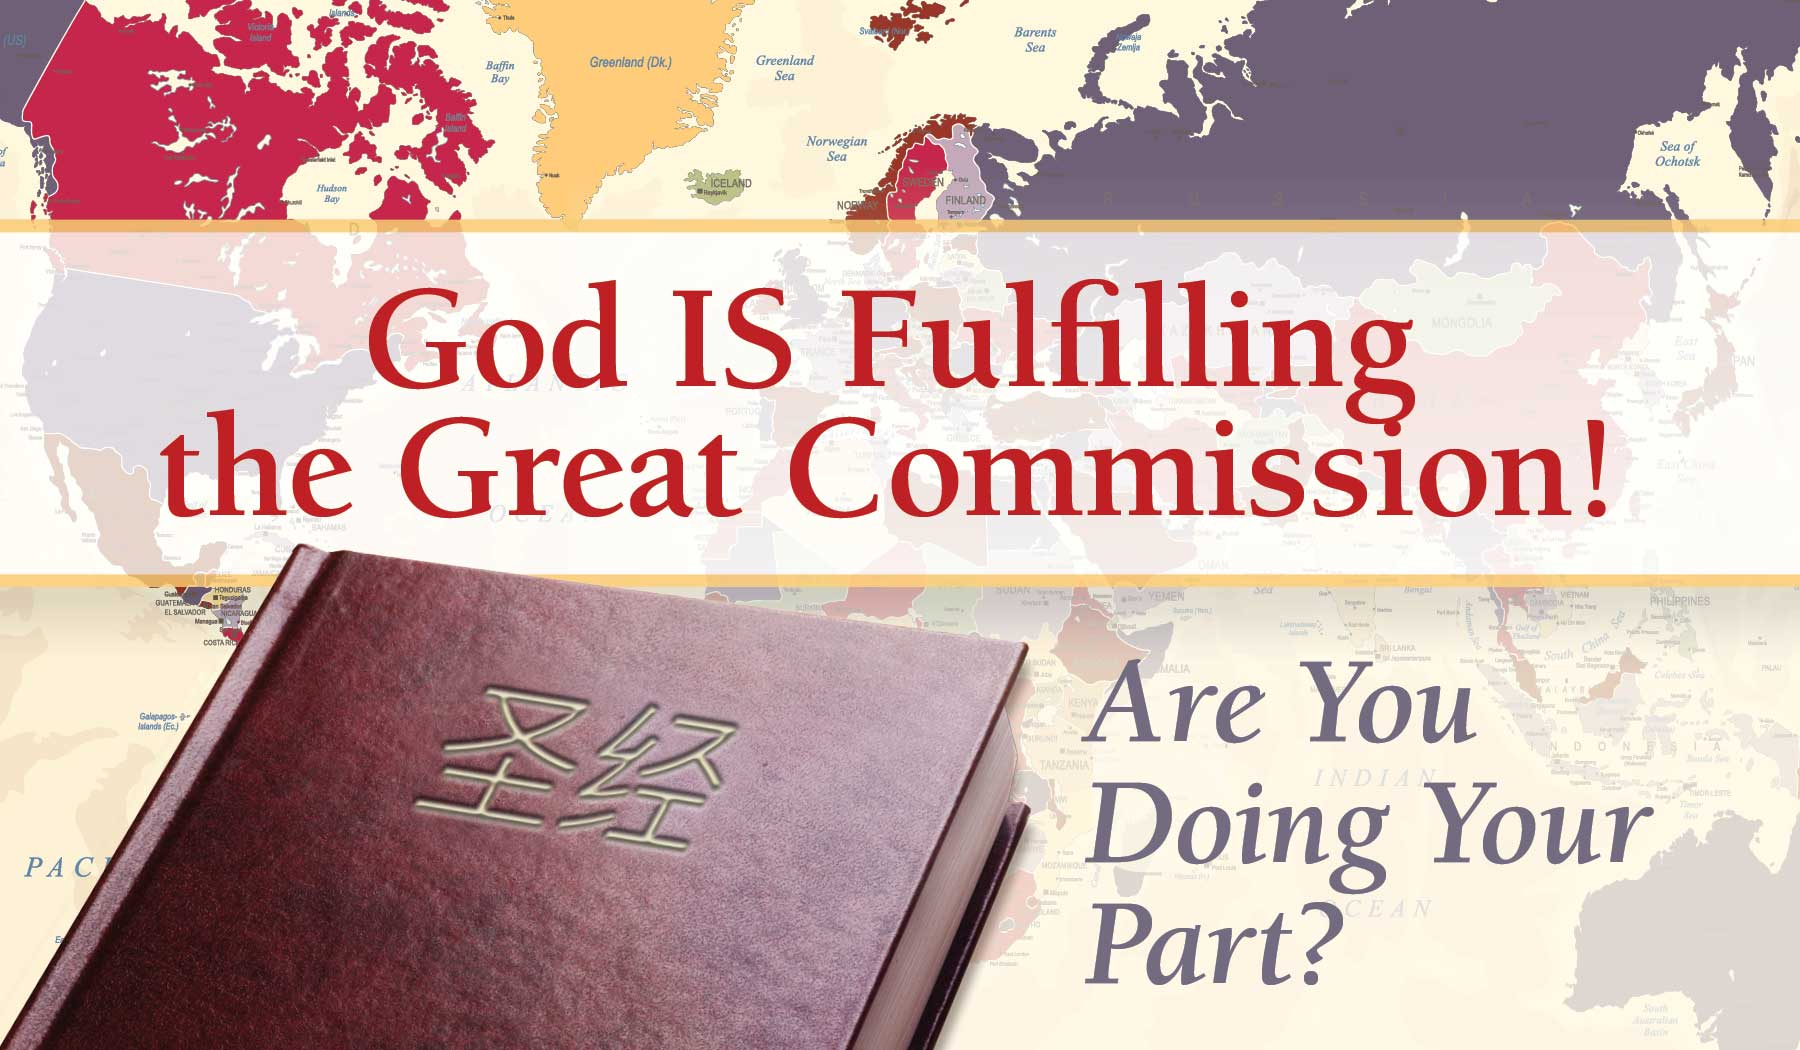 God IS Fulfilling the Great Commission!